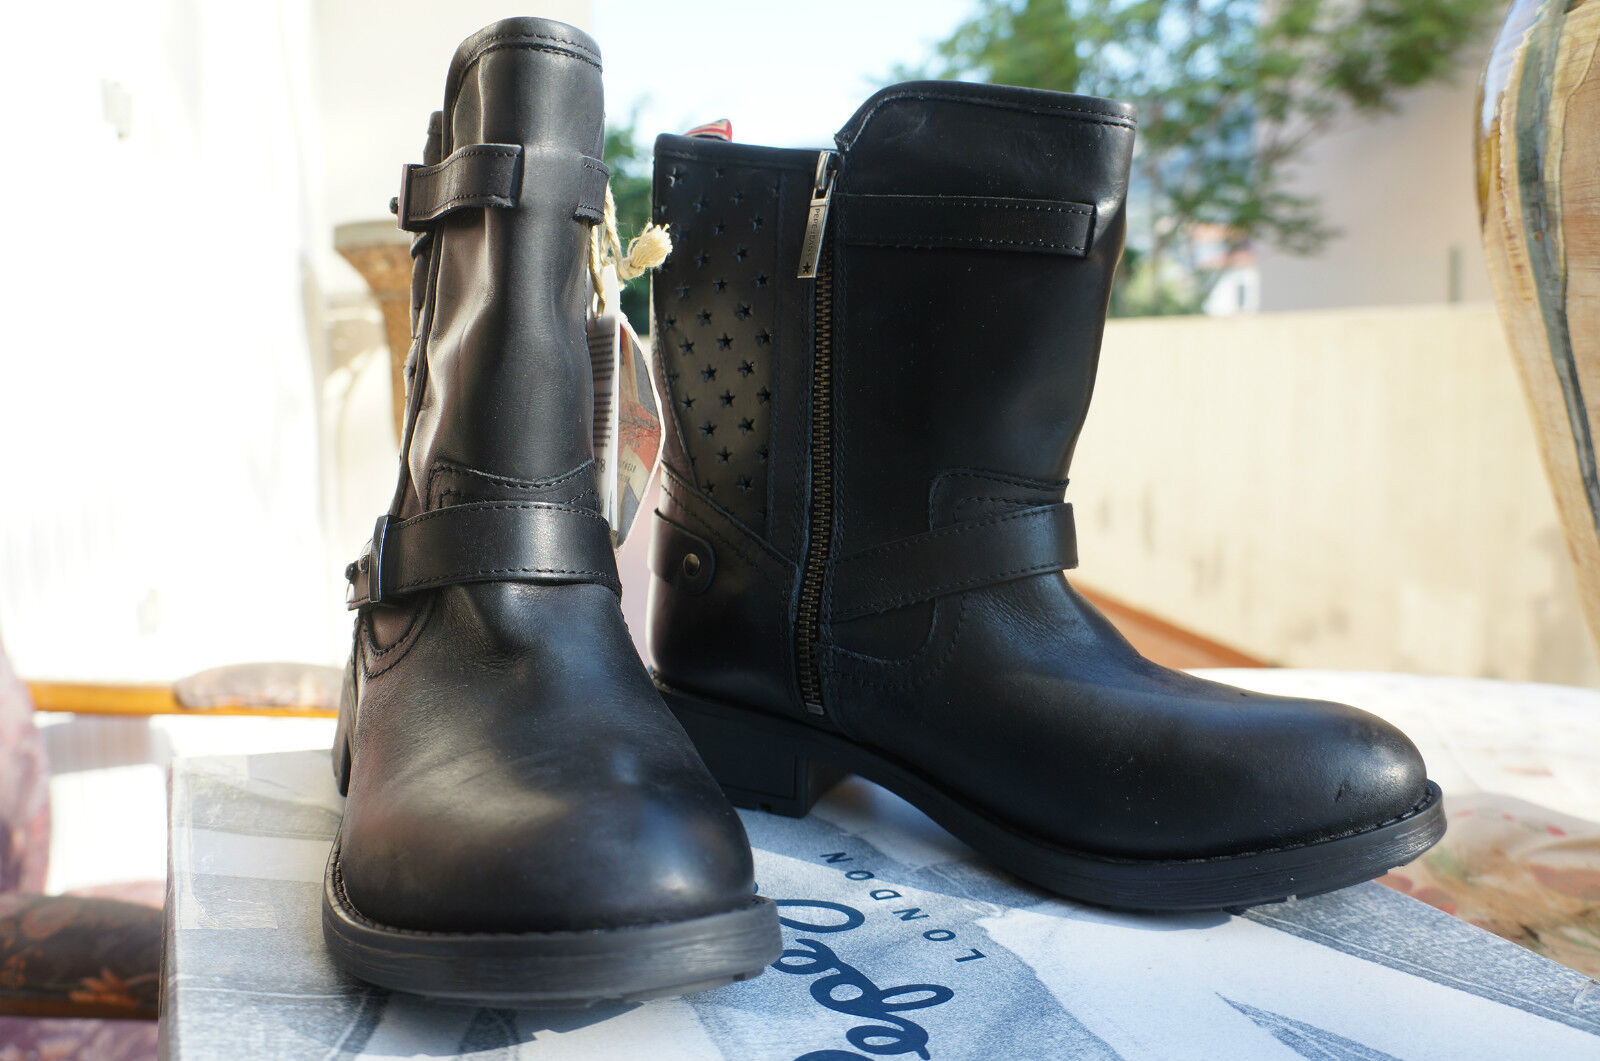 Zapatos especiales con descuento Pepe Jeans London PIMLICO PERFORATIONS, mujer Biker Boots, noir 38 EU -7